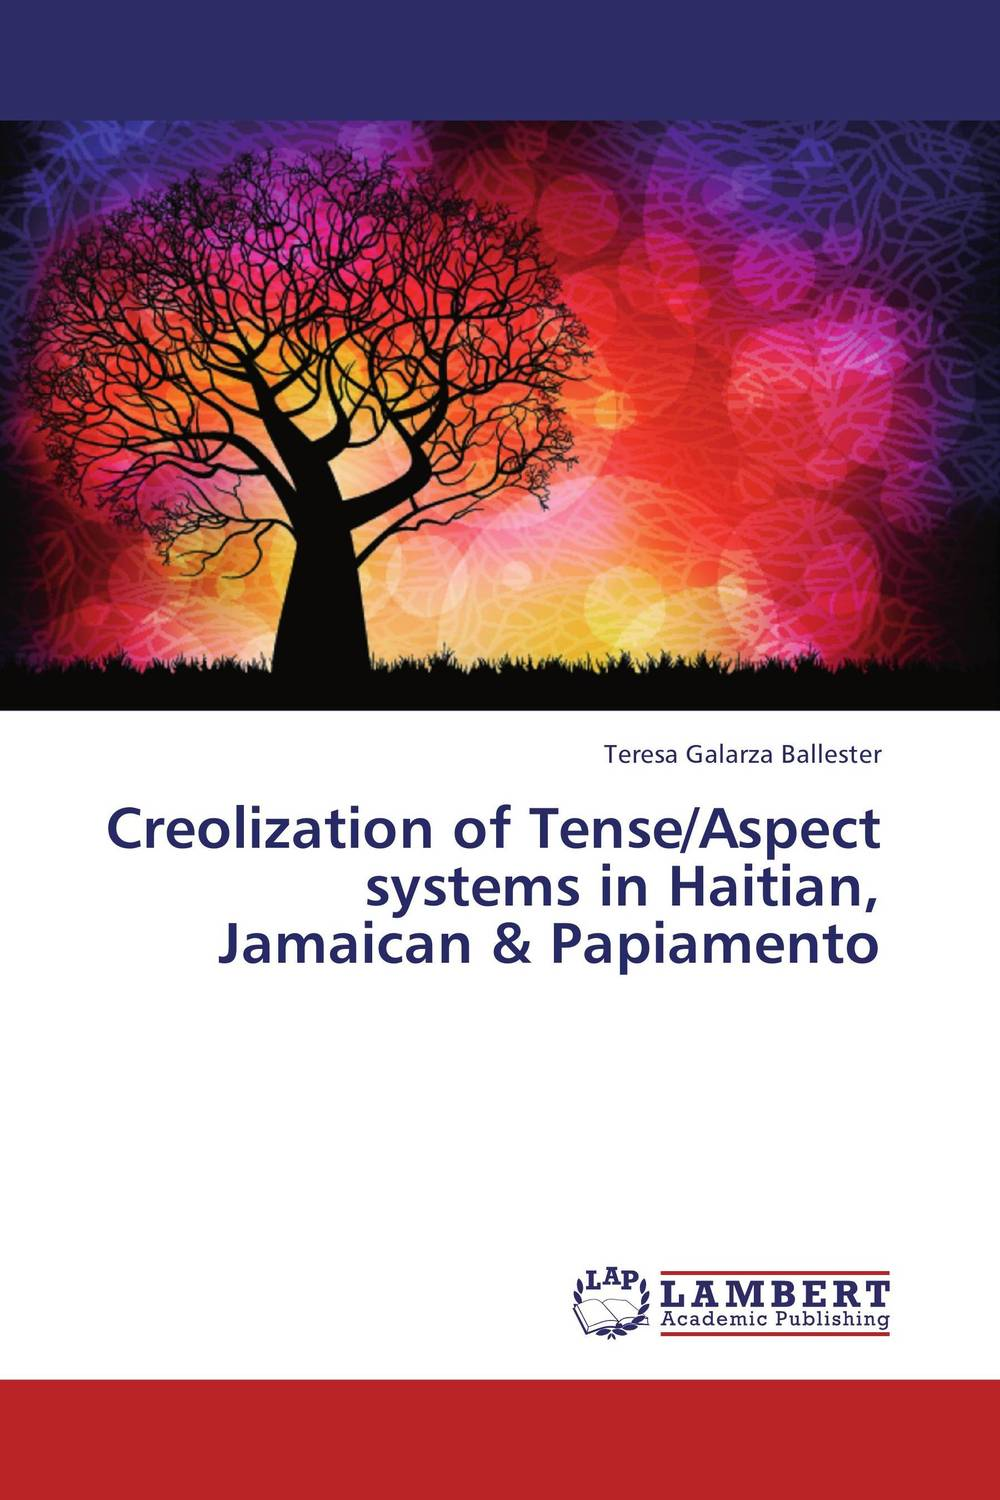 Creolization of Tense/Aspect systems in Haitian, Jamaican & Papiamento creole